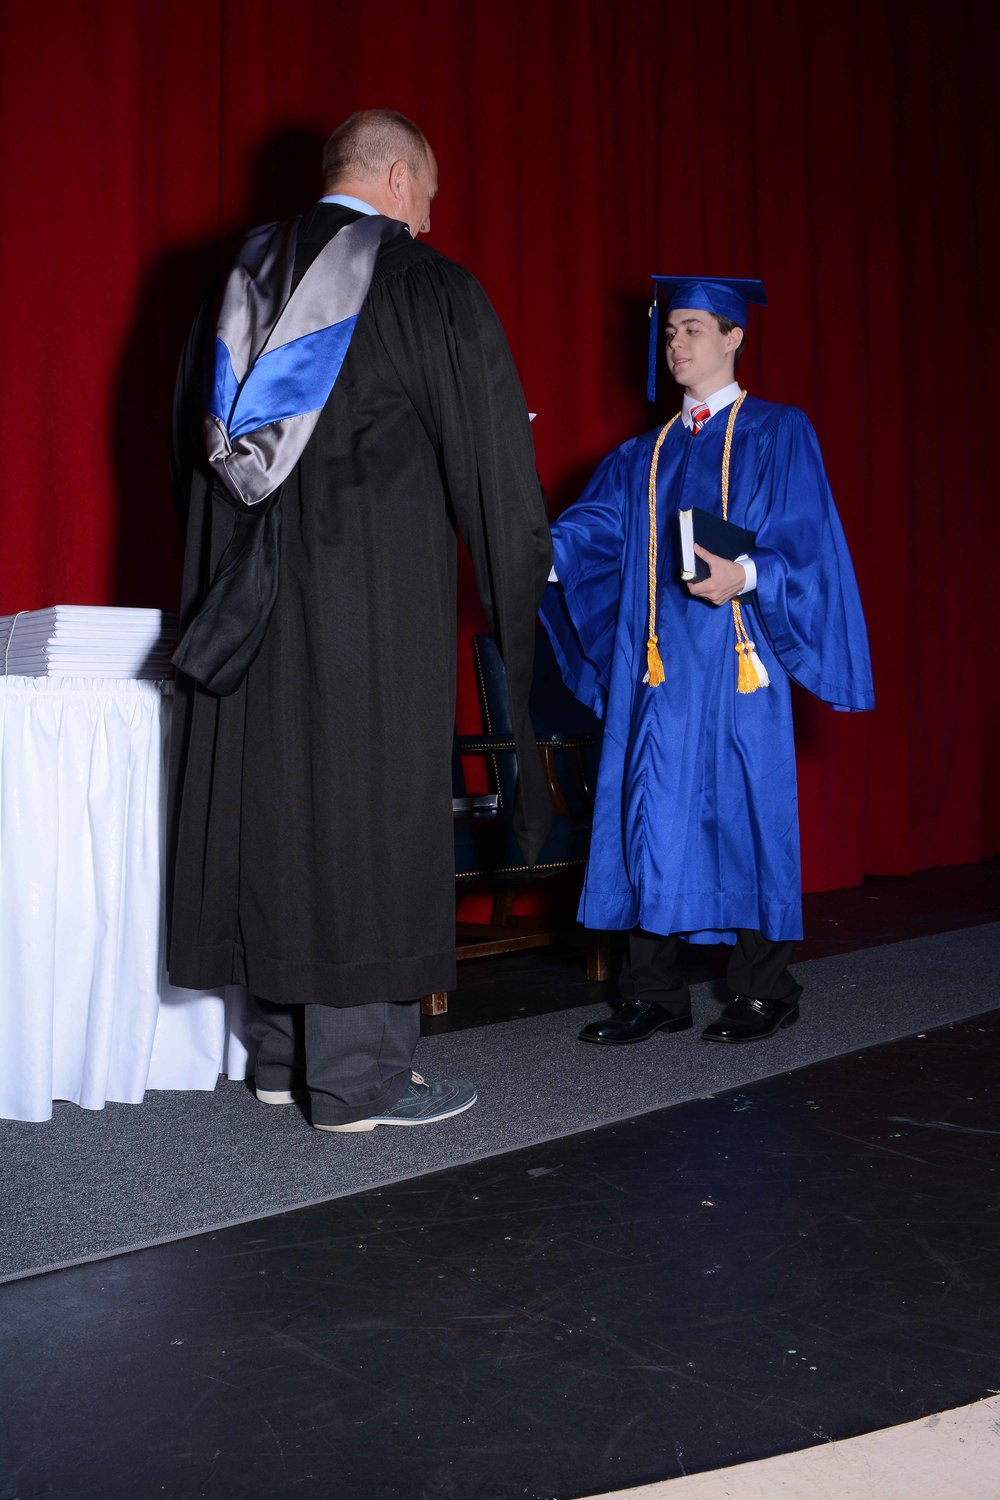 May14 Commencement47.jpg